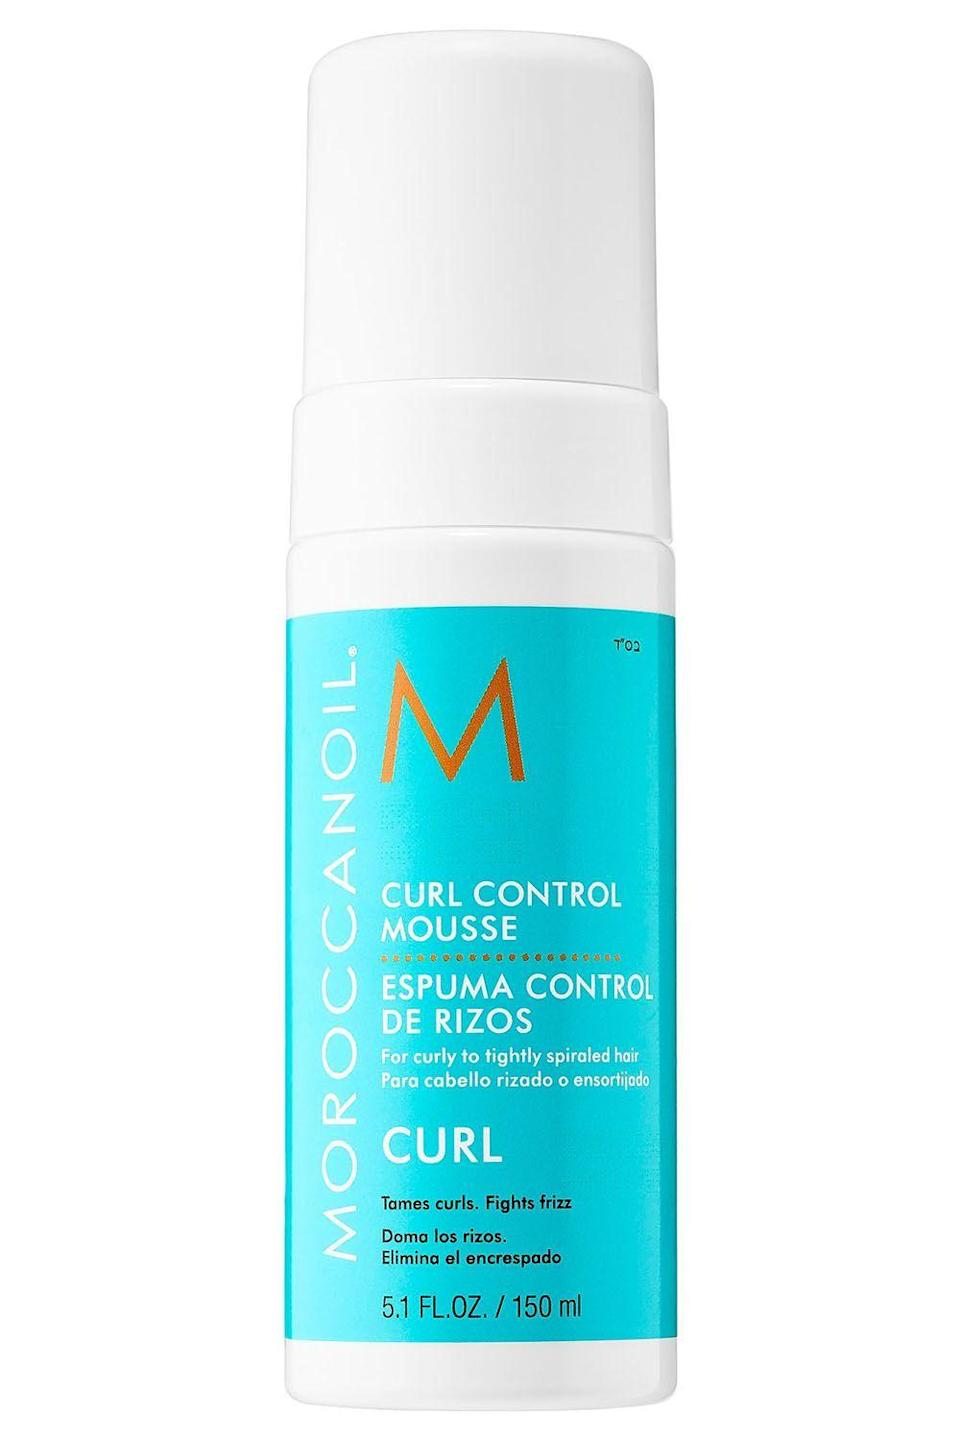 """<p><strong>Moroccanoil</strong></p><p>sephora.com</p><p><strong>$28.00</strong></p><p><a href=""""https://go.redirectingat.com?id=74968X1596630&url=https%3A%2F%2Fwww.sephora.com%2Fproduct%2Fcurl-control-mousse-P427314&sref=https%3A%2F%2Fwww.cosmopolitan.com%2Fstyle-beauty%2Fbeauty%2Fg27452905%2Fbest-mousse-curly-hair%2F"""" rel=""""nofollow noopener"""" target=""""_blank"""" data-ylk=""""slk:Shop Now"""" class=""""link rapid-noclick-resp"""">Shop Now</a></p><p>Argan oil is the hero ingredient in this moisturizing mousse. Comb two pumps of the formula through towel-dried hair—not only will it <strong>bring shine and hydration back to your fuzzy <a href=""""https://www.cosmopolitan.com/style-beauty/beauty/a26090163/best-products-4c-curls-hair/"""" rel=""""nofollow noopener"""" target=""""_blank"""" data-ylk=""""slk:curls"""" class=""""link rapid-noclick-resp"""">curls</a> </strong>(thanks, argan oil), but it'll also keep them soft and defined all day long.</p>"""